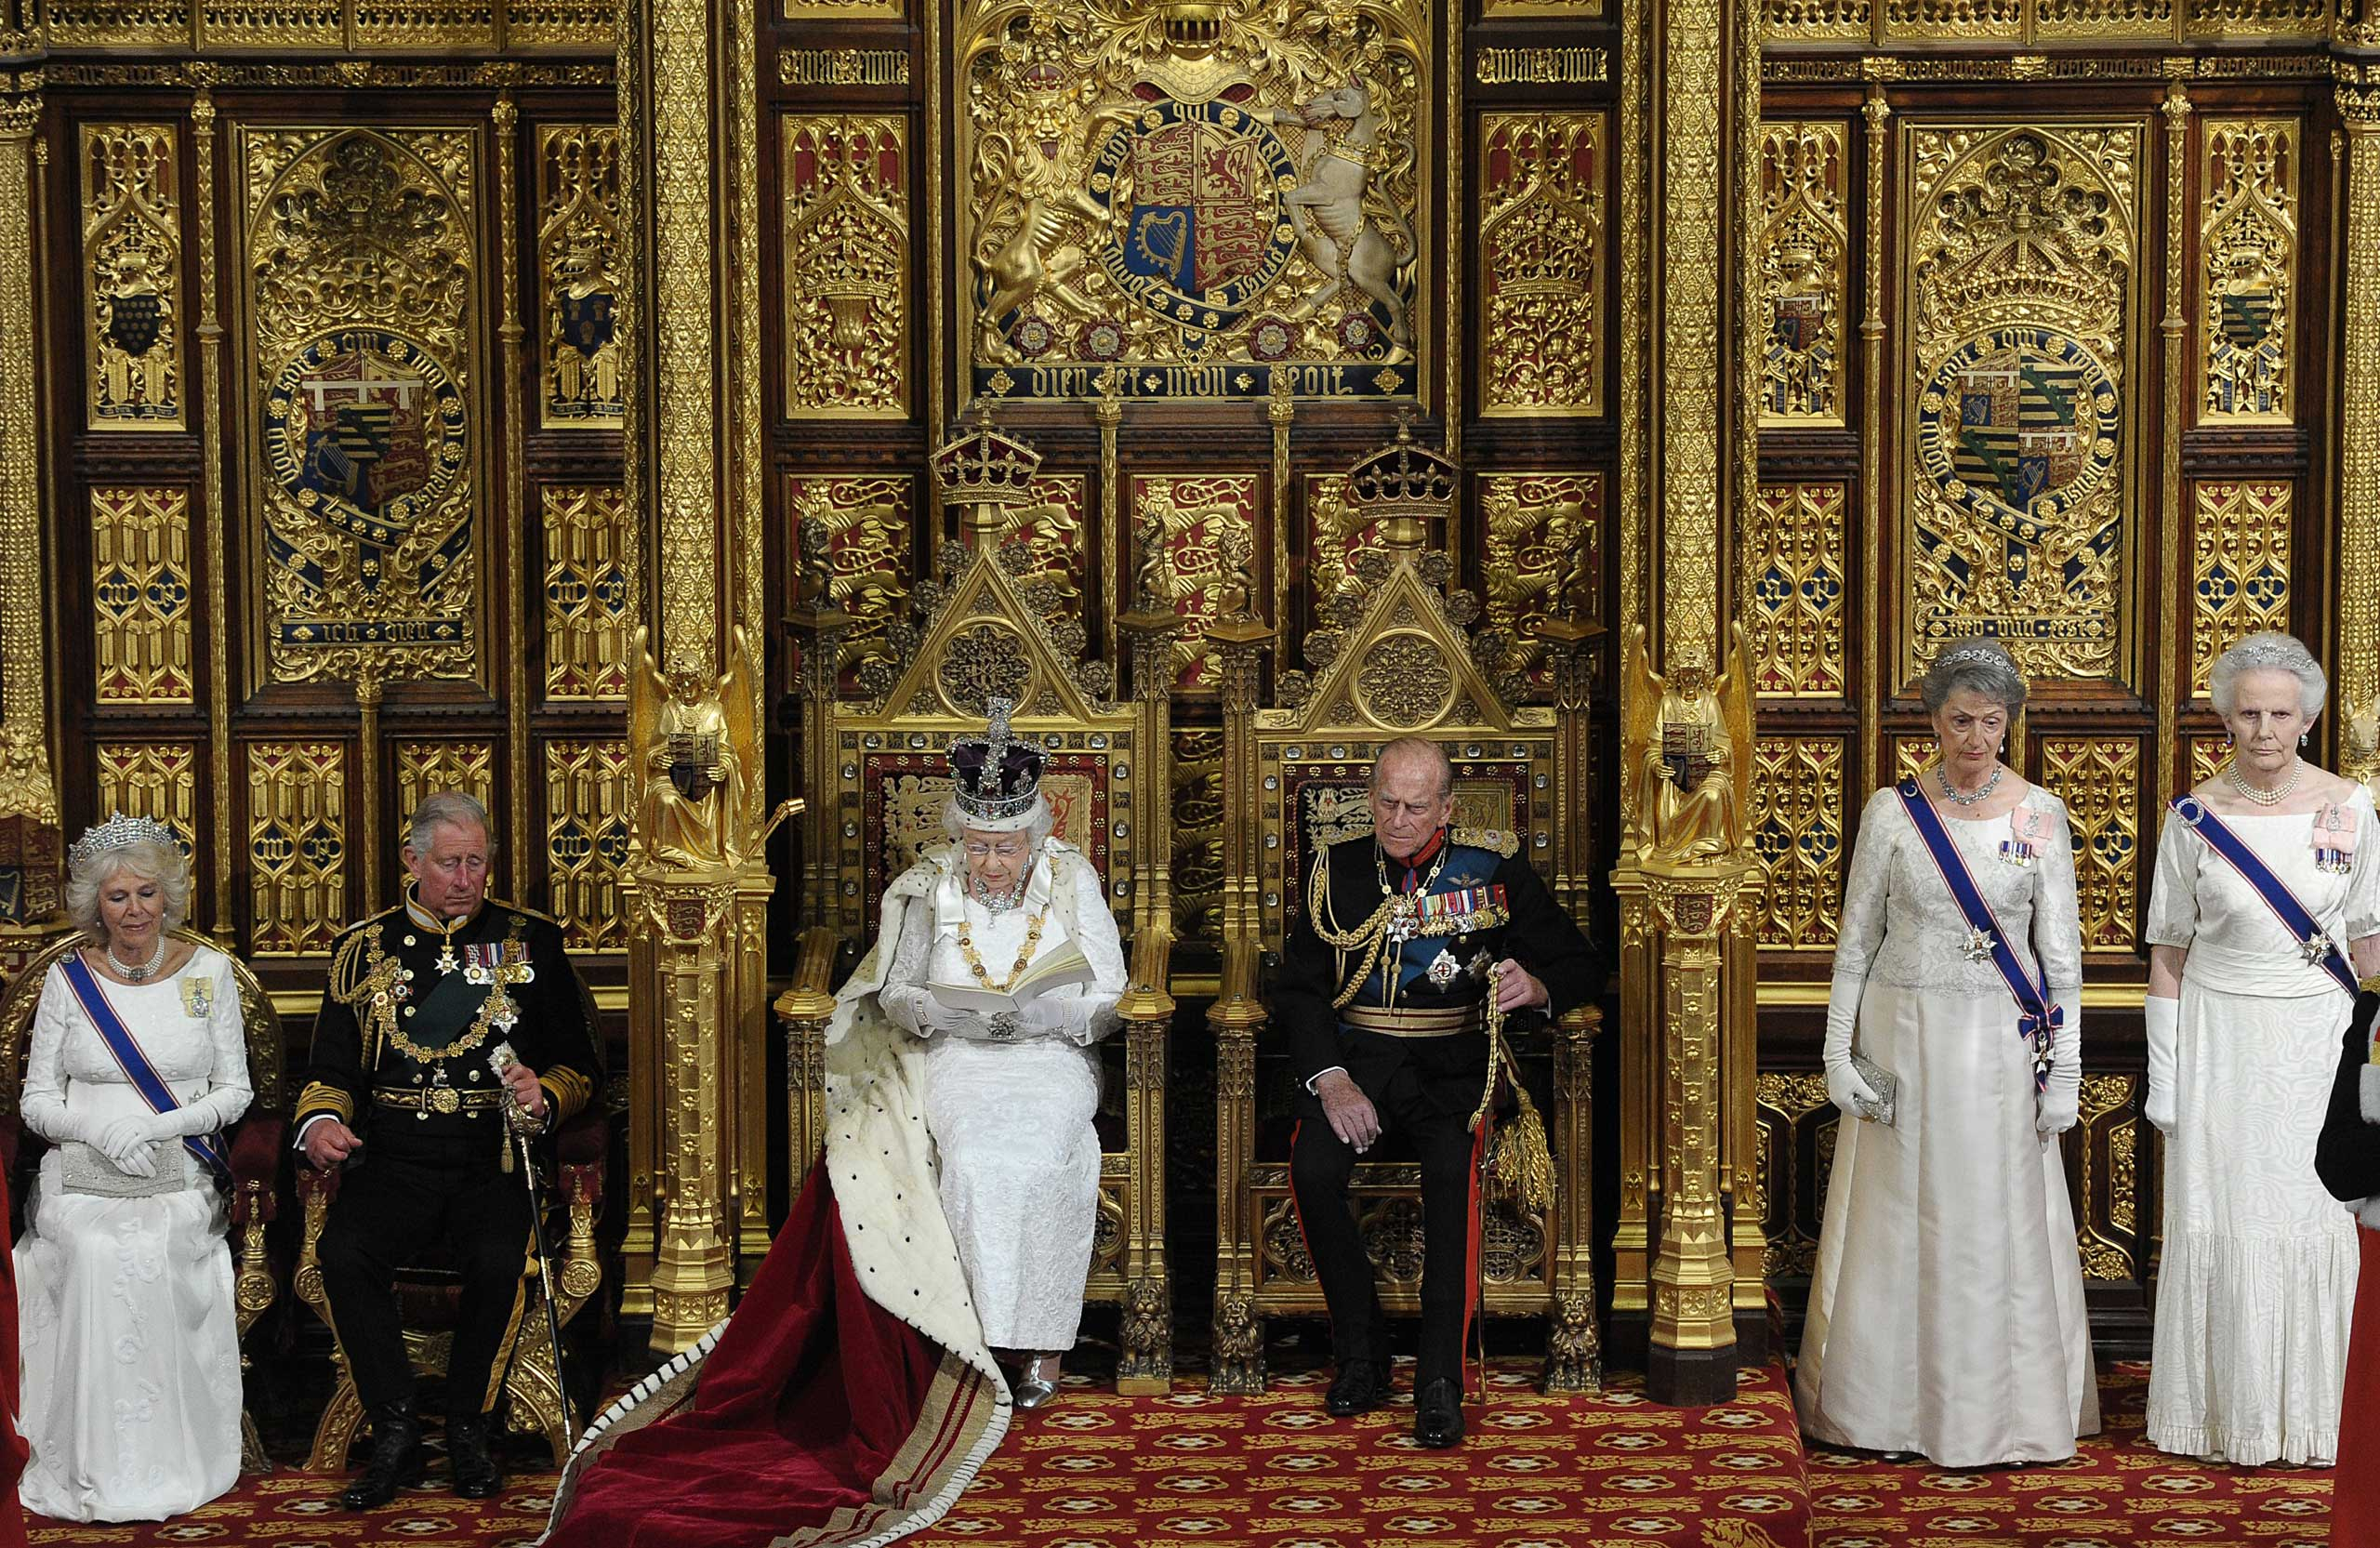 Queen Elizabeth II delivers the Queen's Speech from the Throne in the House of Lords next to Prince Philip, Duke of Edinburgh, Britain's Camilla, Duchess of Cornwall and Prince Charles, Prince of Wales during the State Opening of Parliament at the Palace of Westminster in London in 2014.